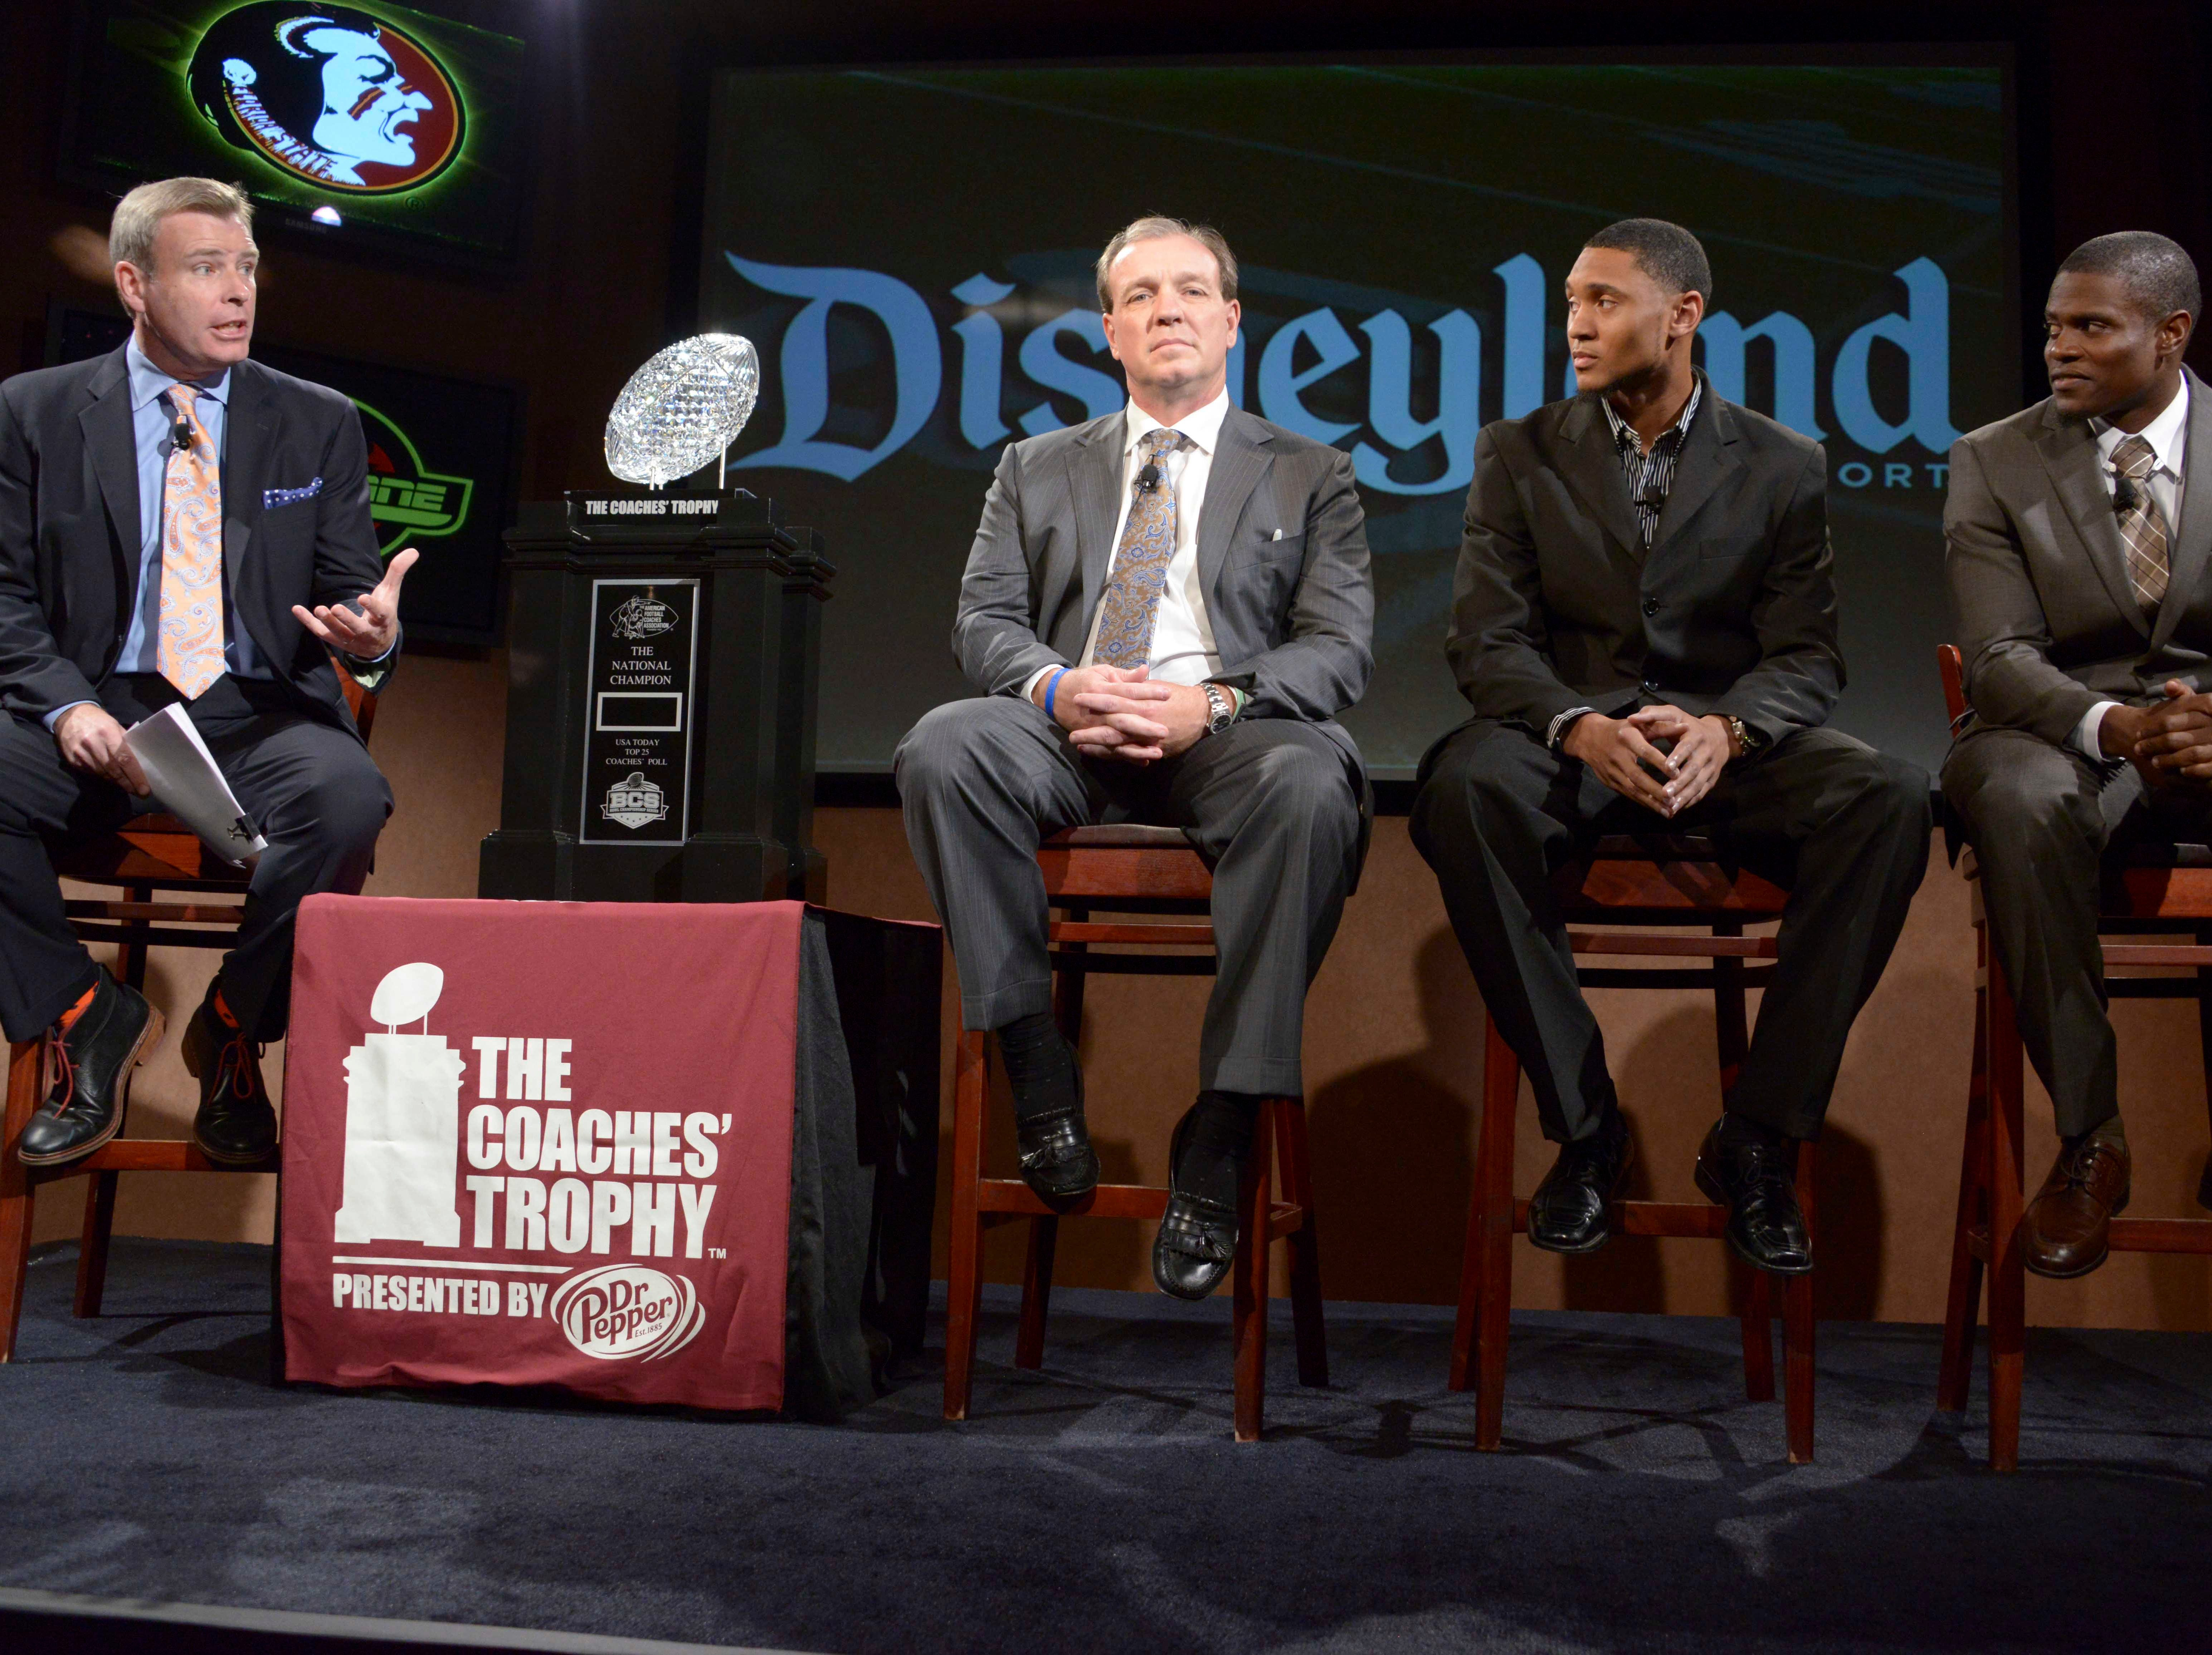 Dec 31, 2013; Anaheim, CA, USA; ESPN broadcaster Tom Rinaldi (left) interviews Florida State Seminoles coach Jimbo Fisher (second from left) and receiver Rashad Greene (second from right) and defensive back Lamarcus Joyner at a press conference for the 2014 BCS National Championship at ESPN Zone Downtown Disney. Mandatory Credit: Kirby Lee-USA TODAY Sports